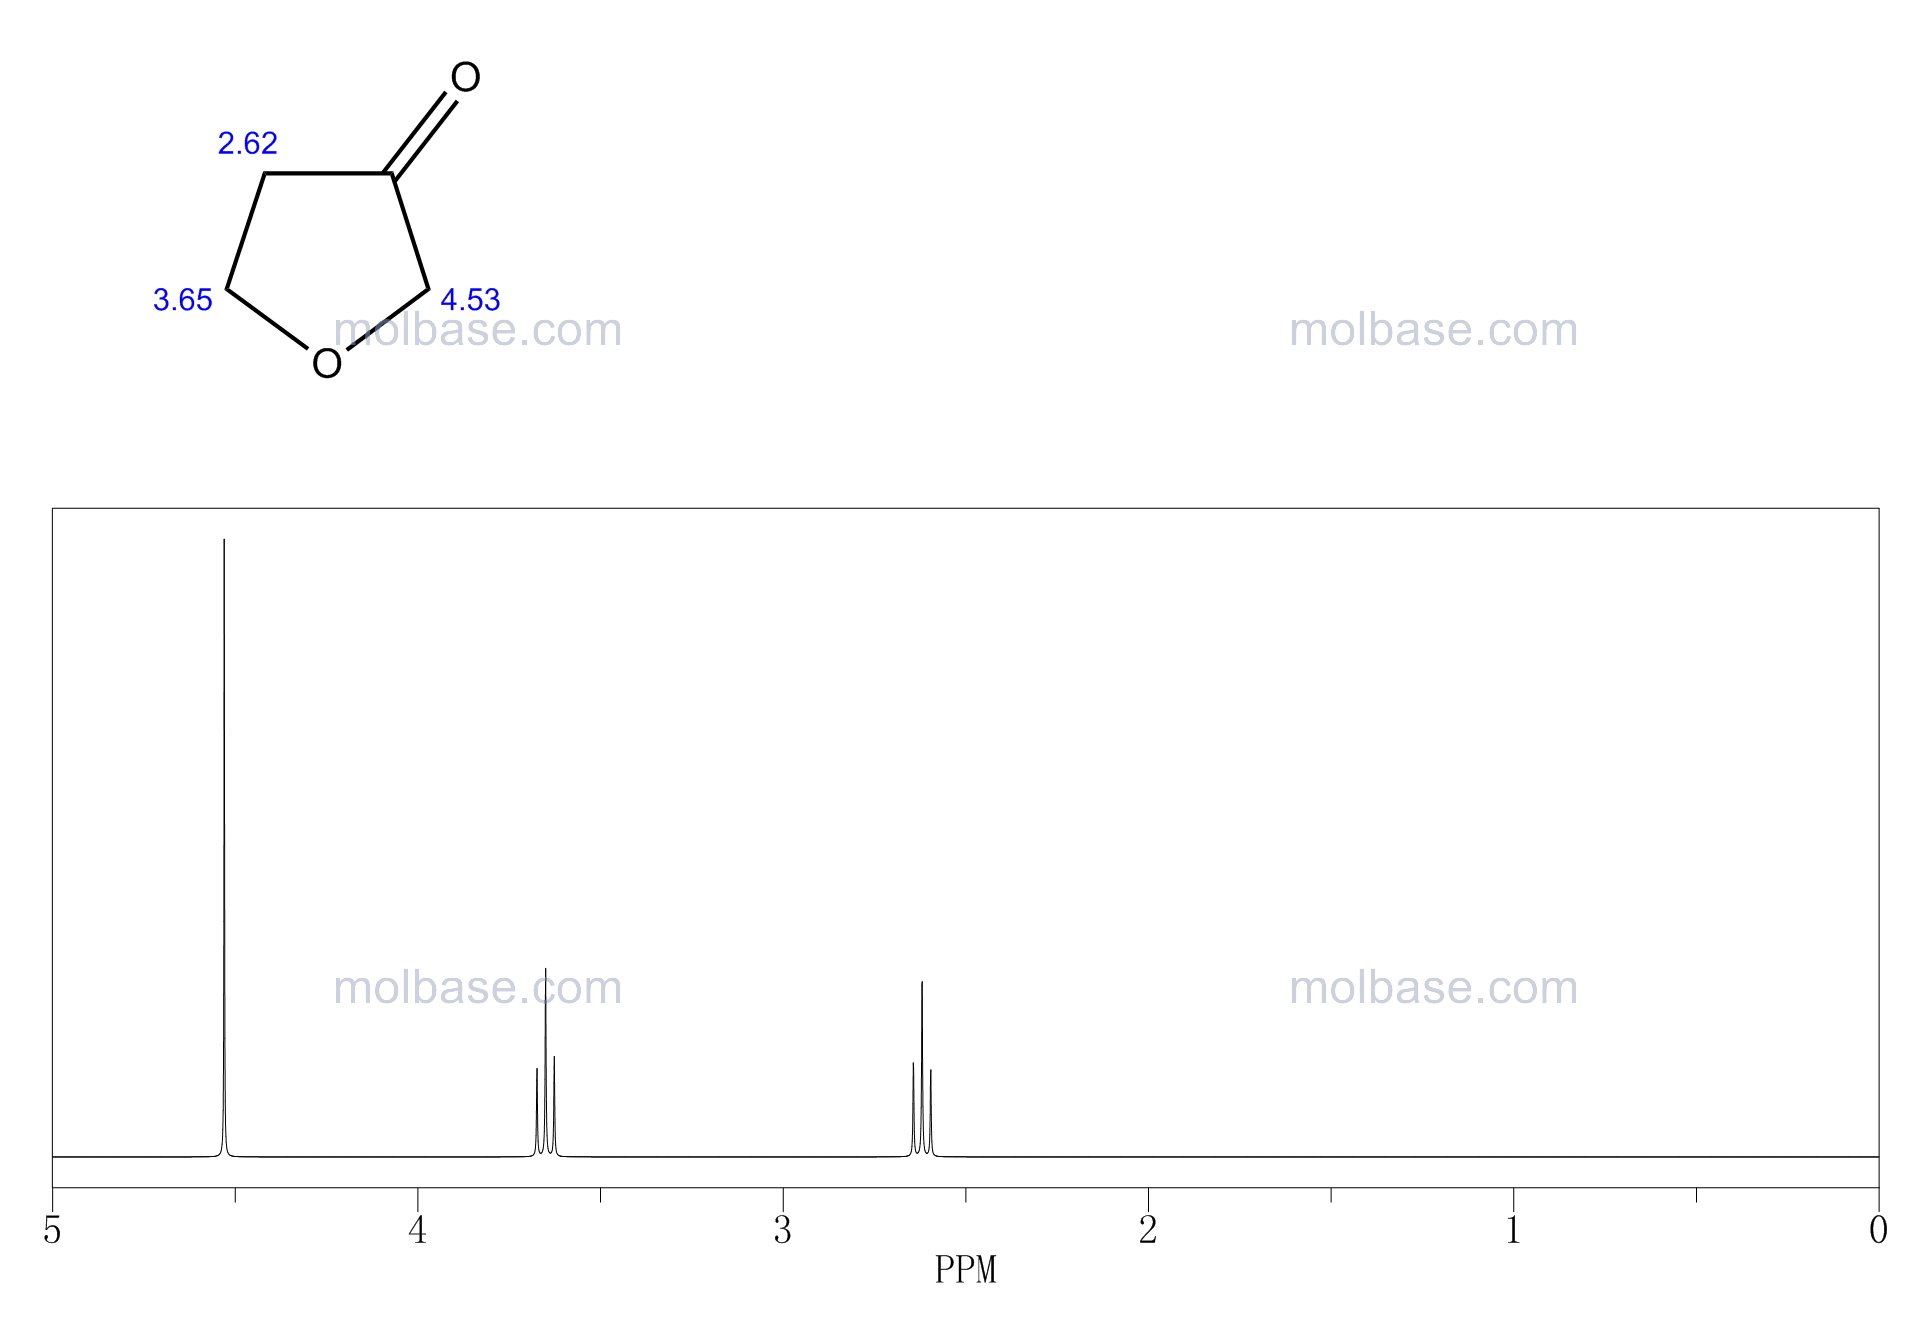 oxolan-3-one NMR spectra analysis, Chemical CAS NO. 22929-52-8 NMR spectral analysis, oxolan-3-one C-NMR spectrum